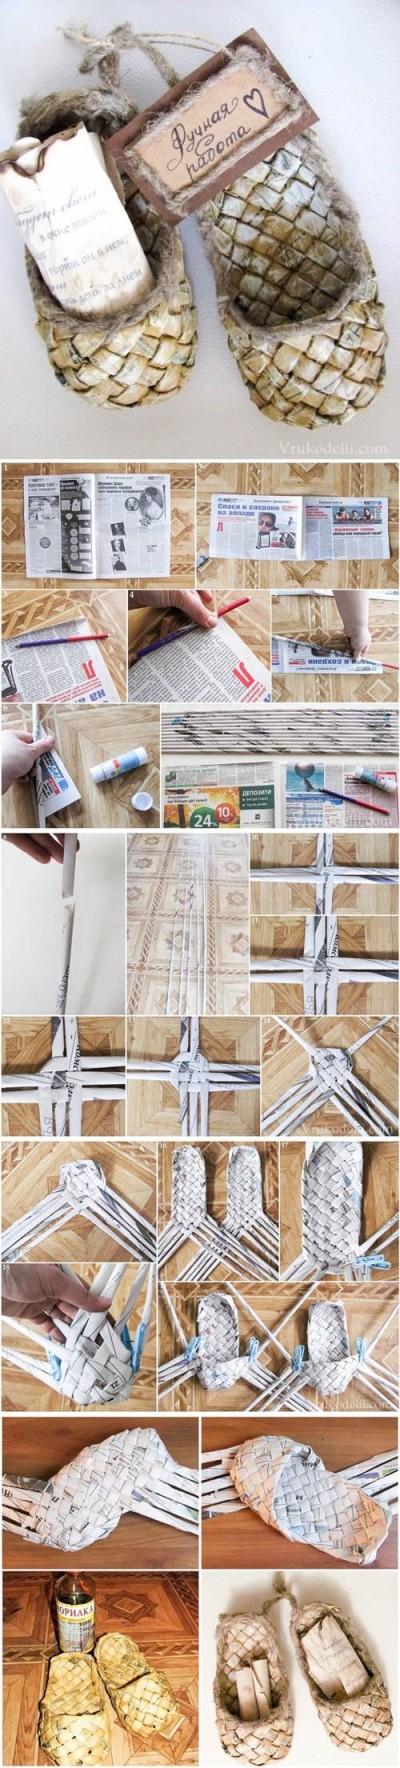 How to make Souvenir for Home step by step DIY tutorial instructions